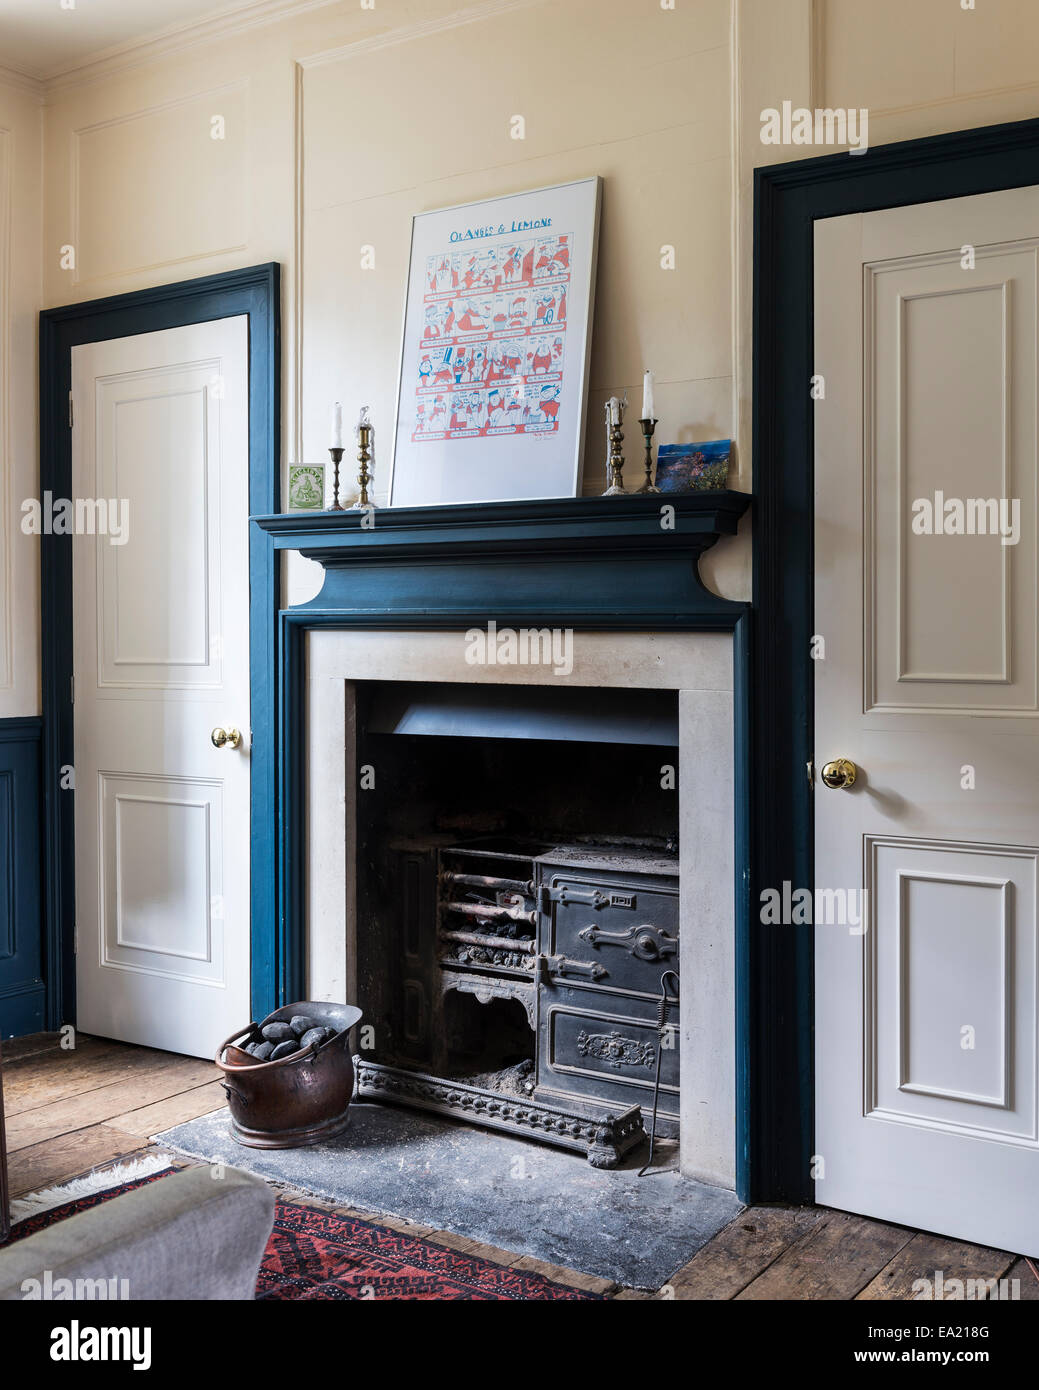 Signed Paul Brommer print above fireplace with original stove - Stock Image